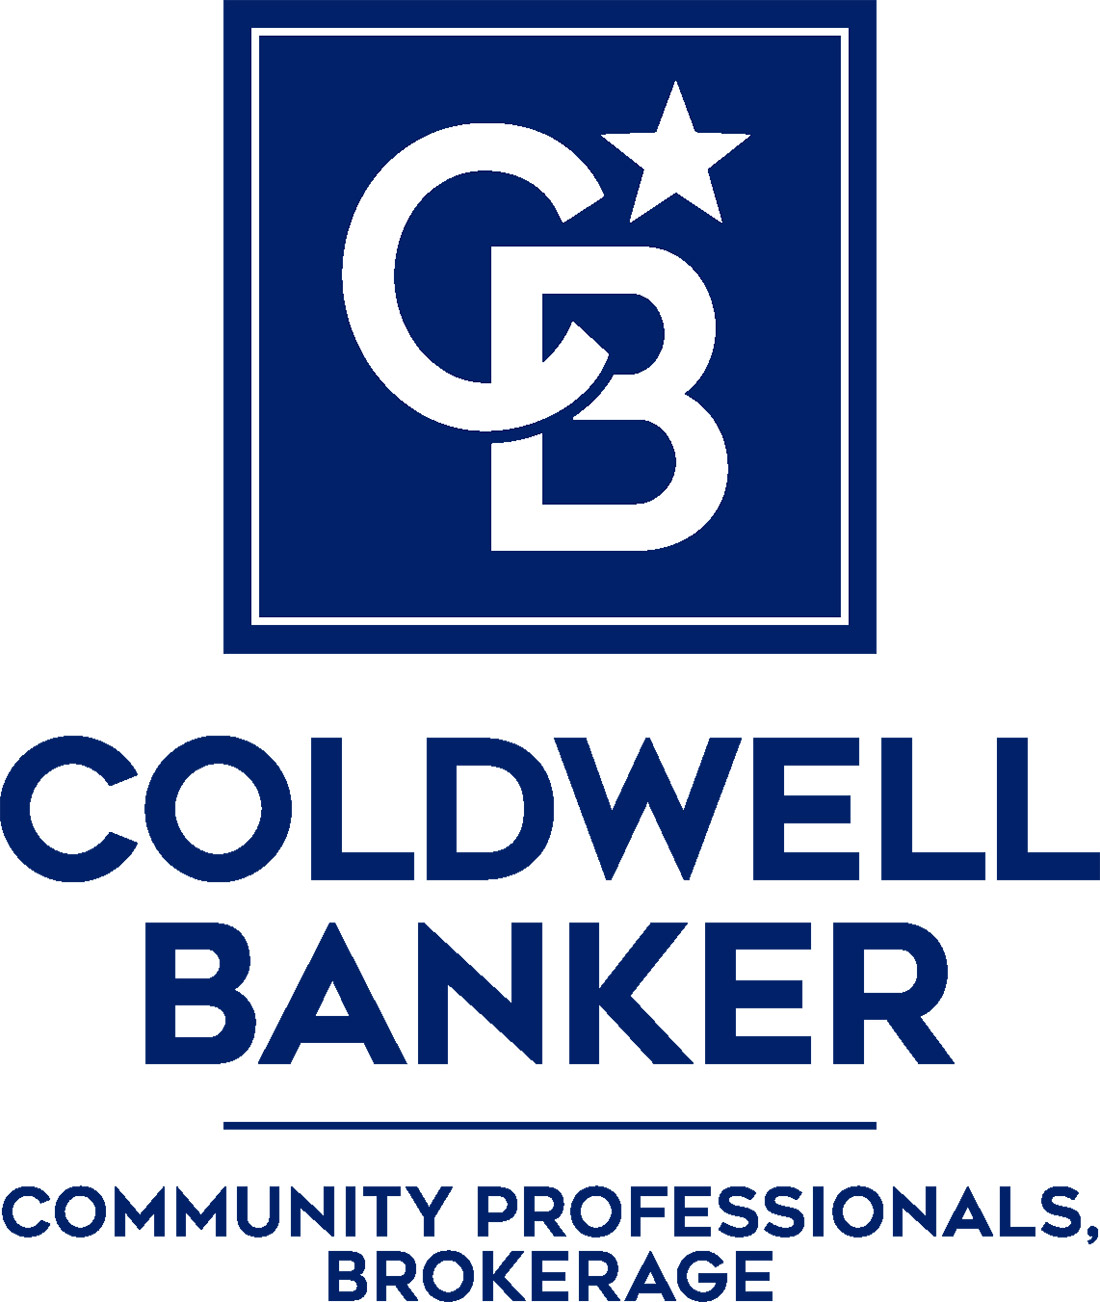 Brock Weinberger - Coldwell Banker Community Professionals